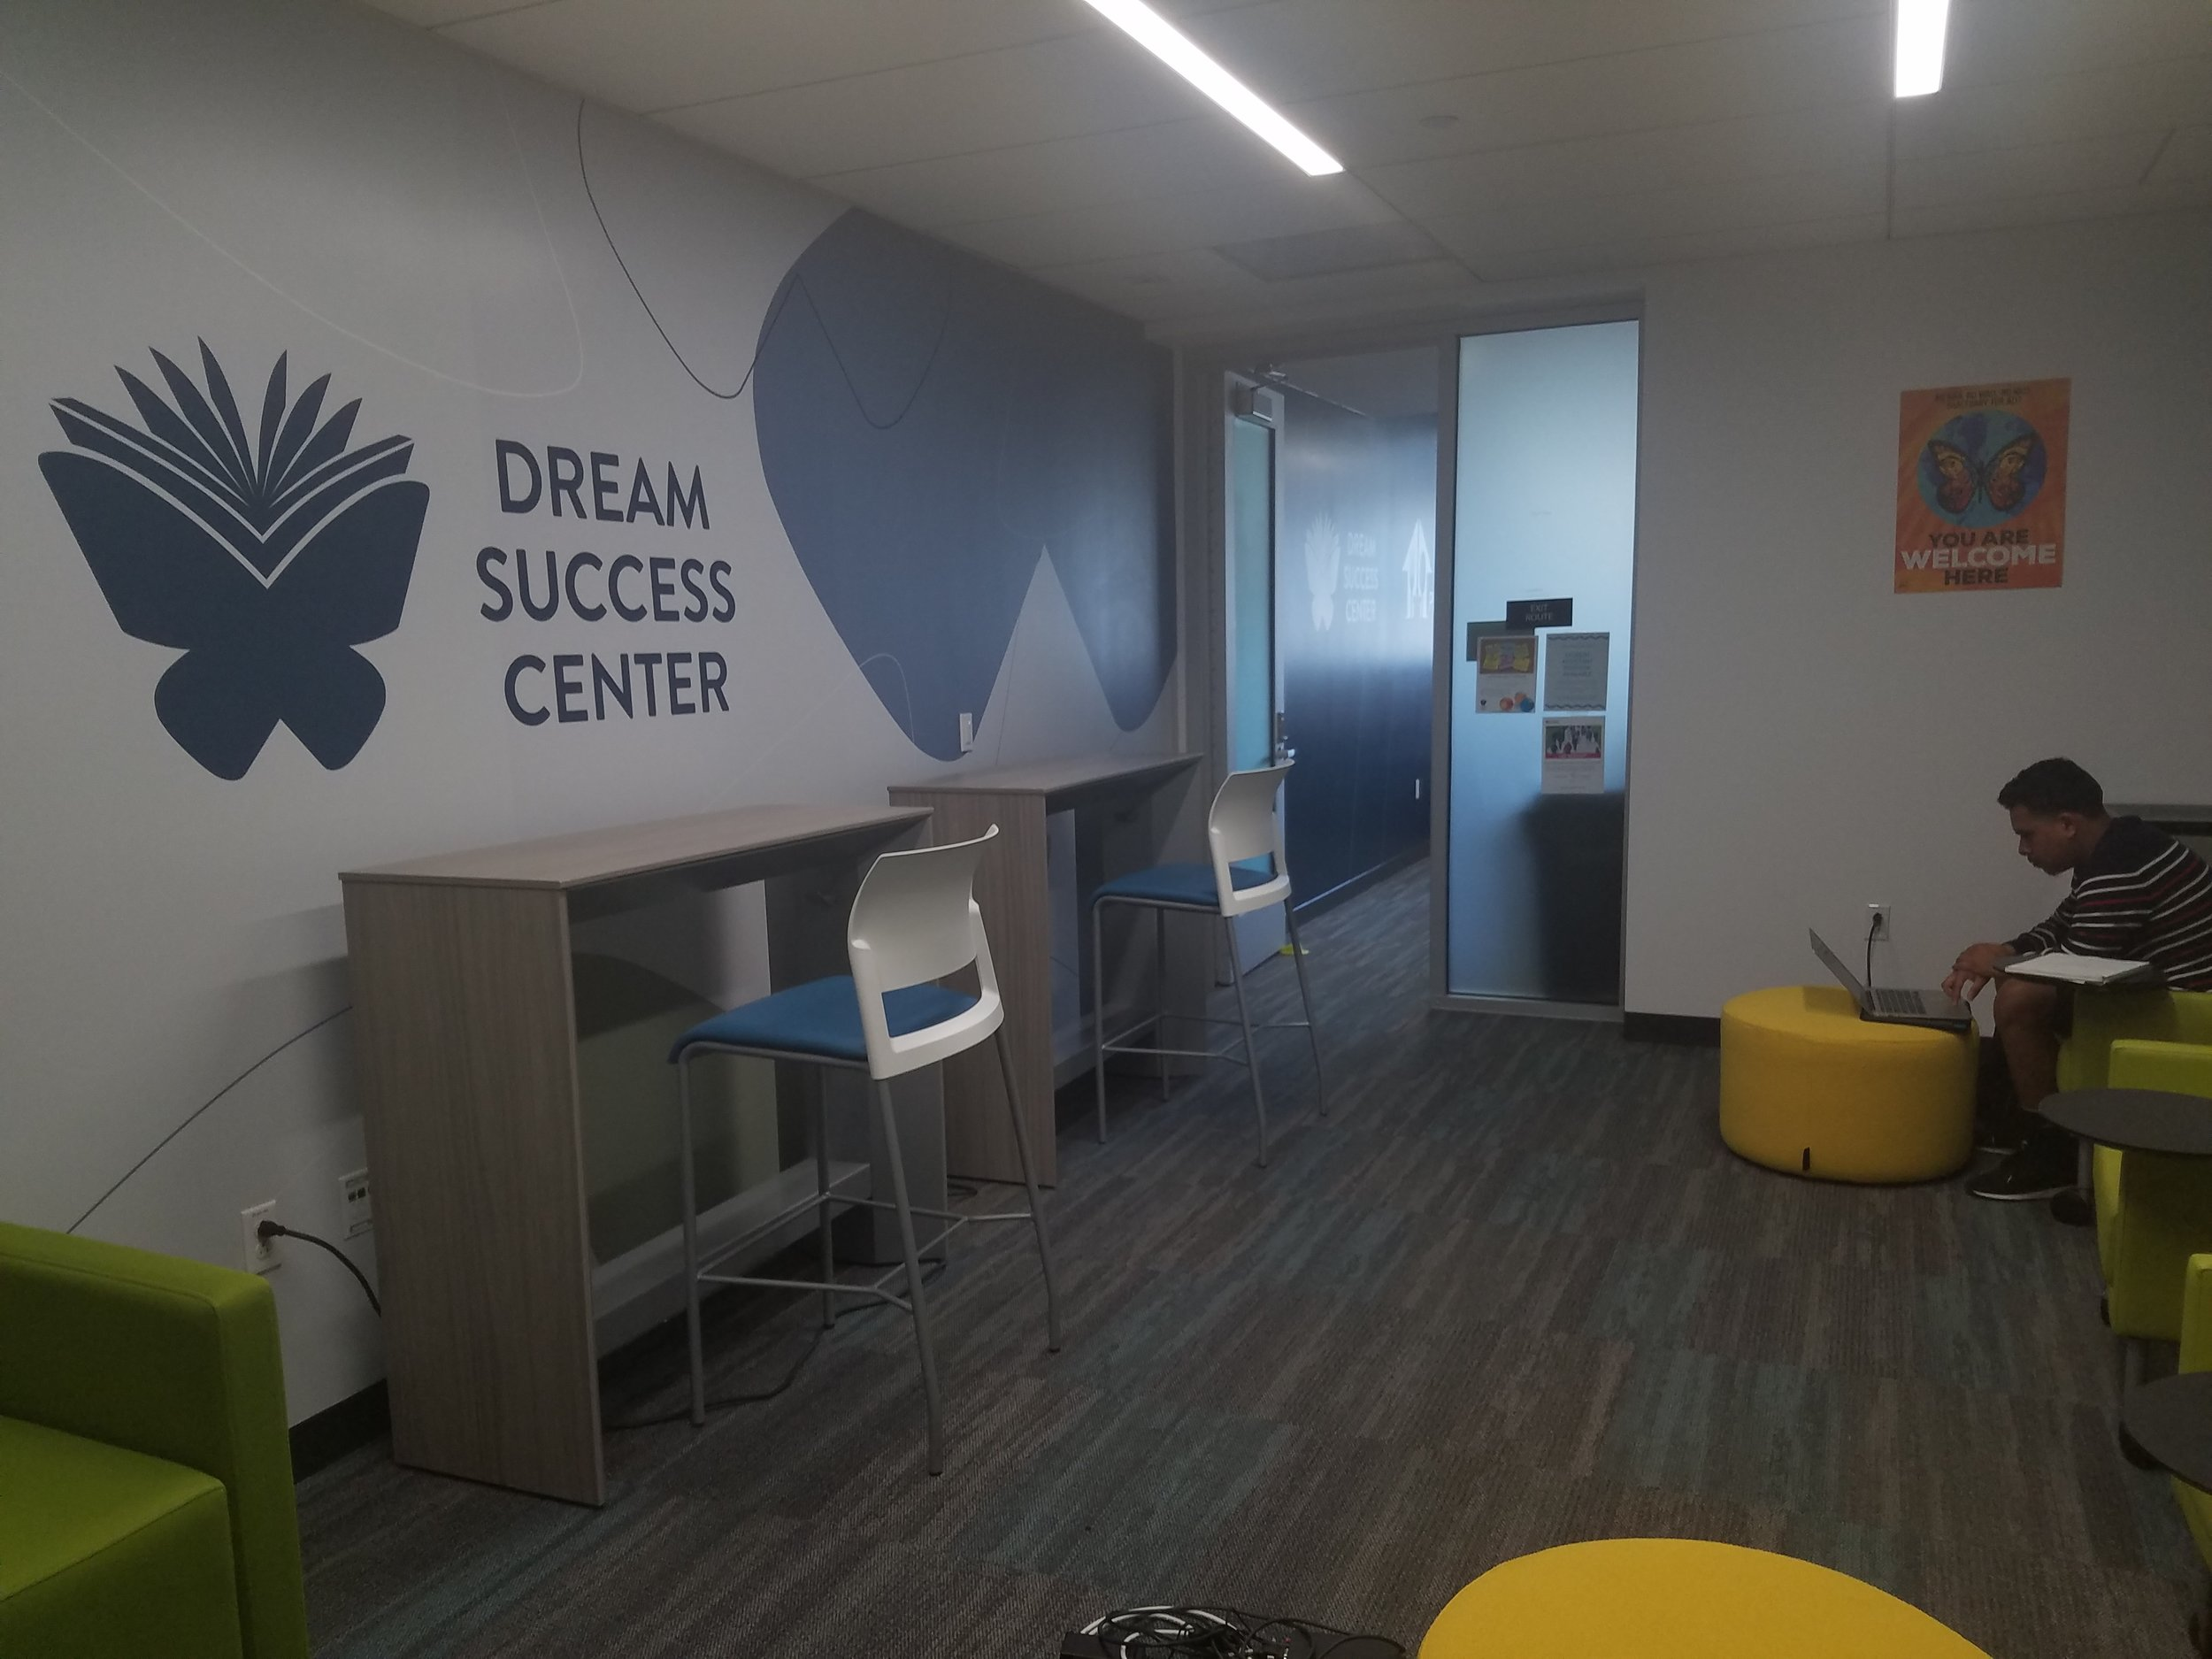 DreamSuccessCenter.jpg